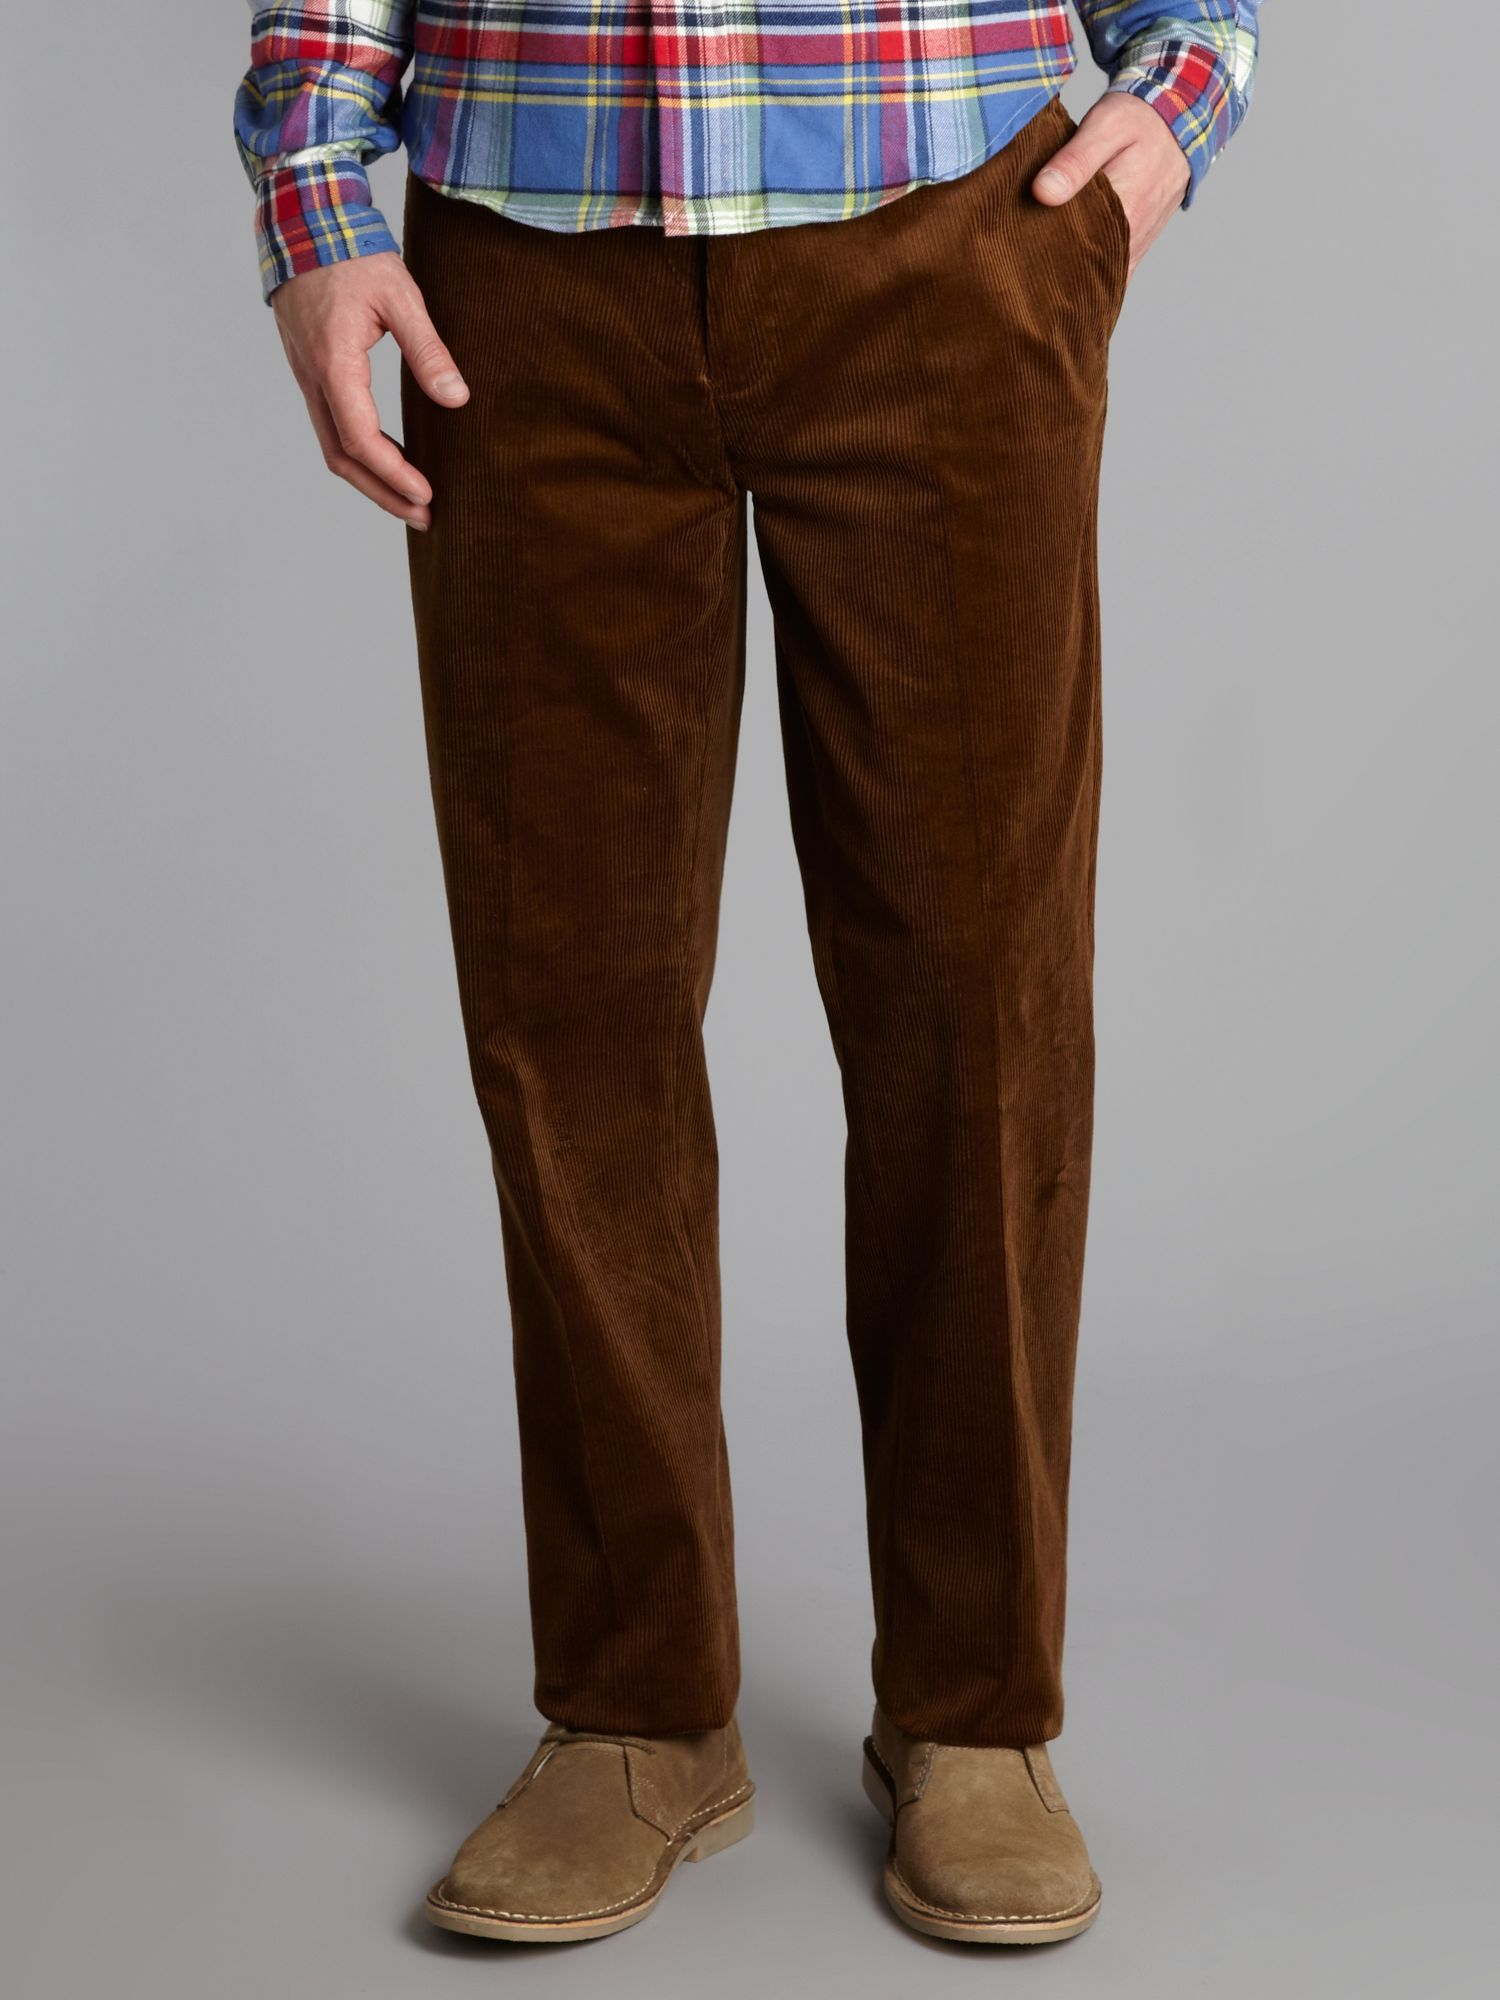 Polo ralph lauren Suffield Stretch Corduroy Trousers in Brown for ...